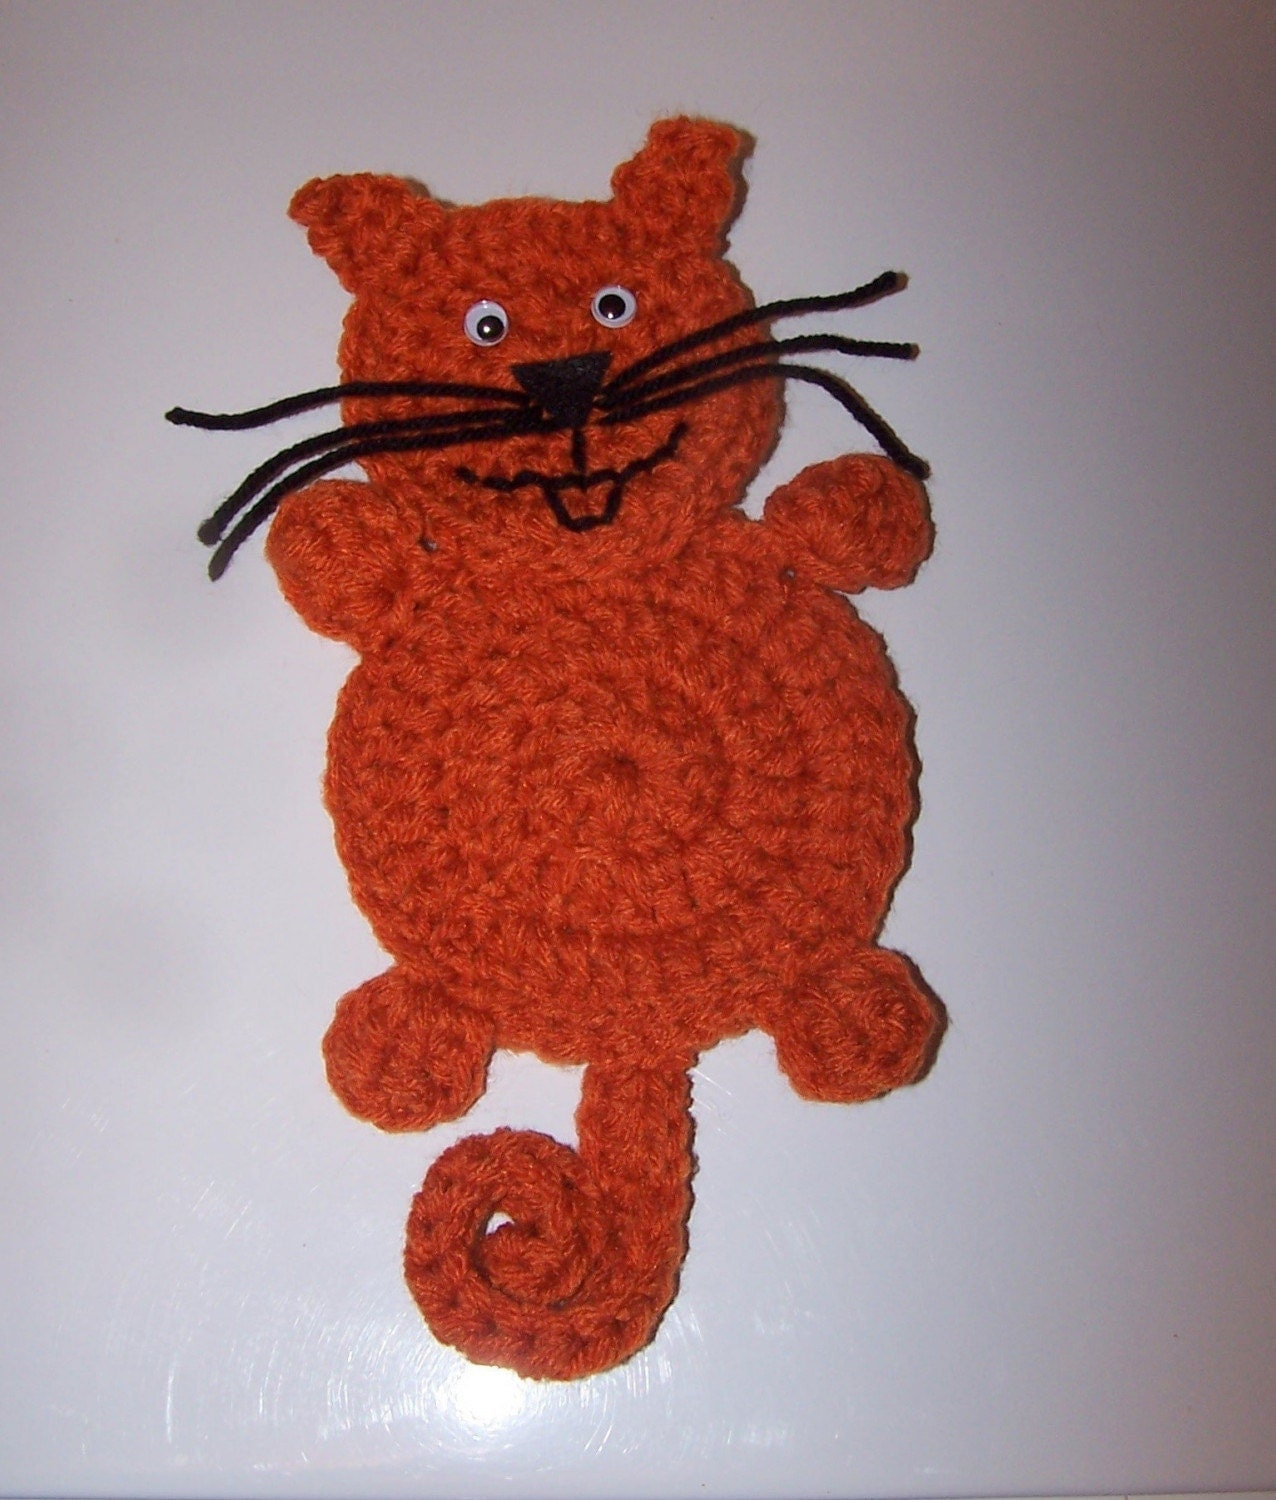 ... Crochet Cats/Kittens on Pinterest Crochet cats, Hello kitty and Cat